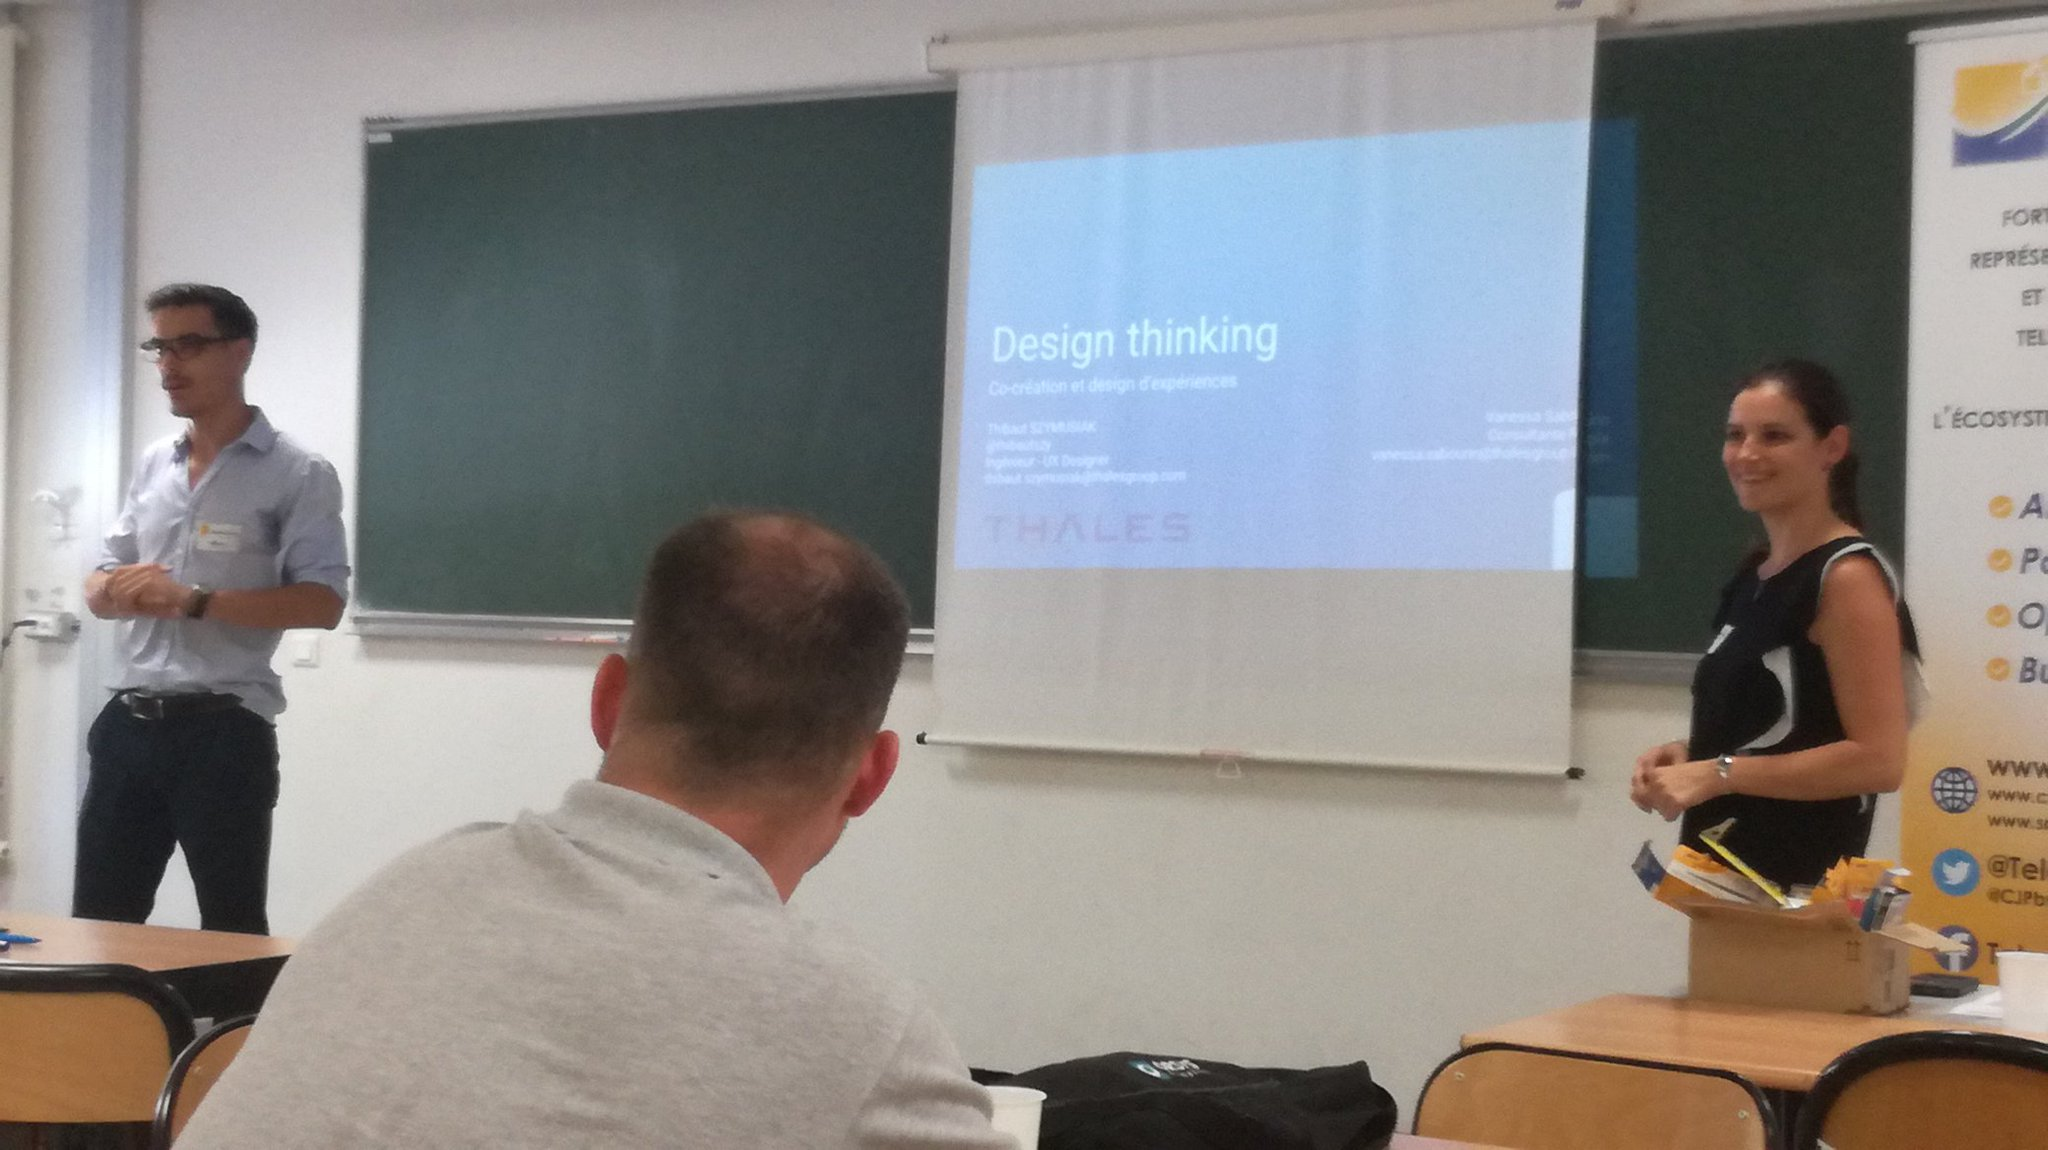 Design thinking workshop #SophiaConf2017 by @TelecomValley https://t.co/lFdrWx6phA